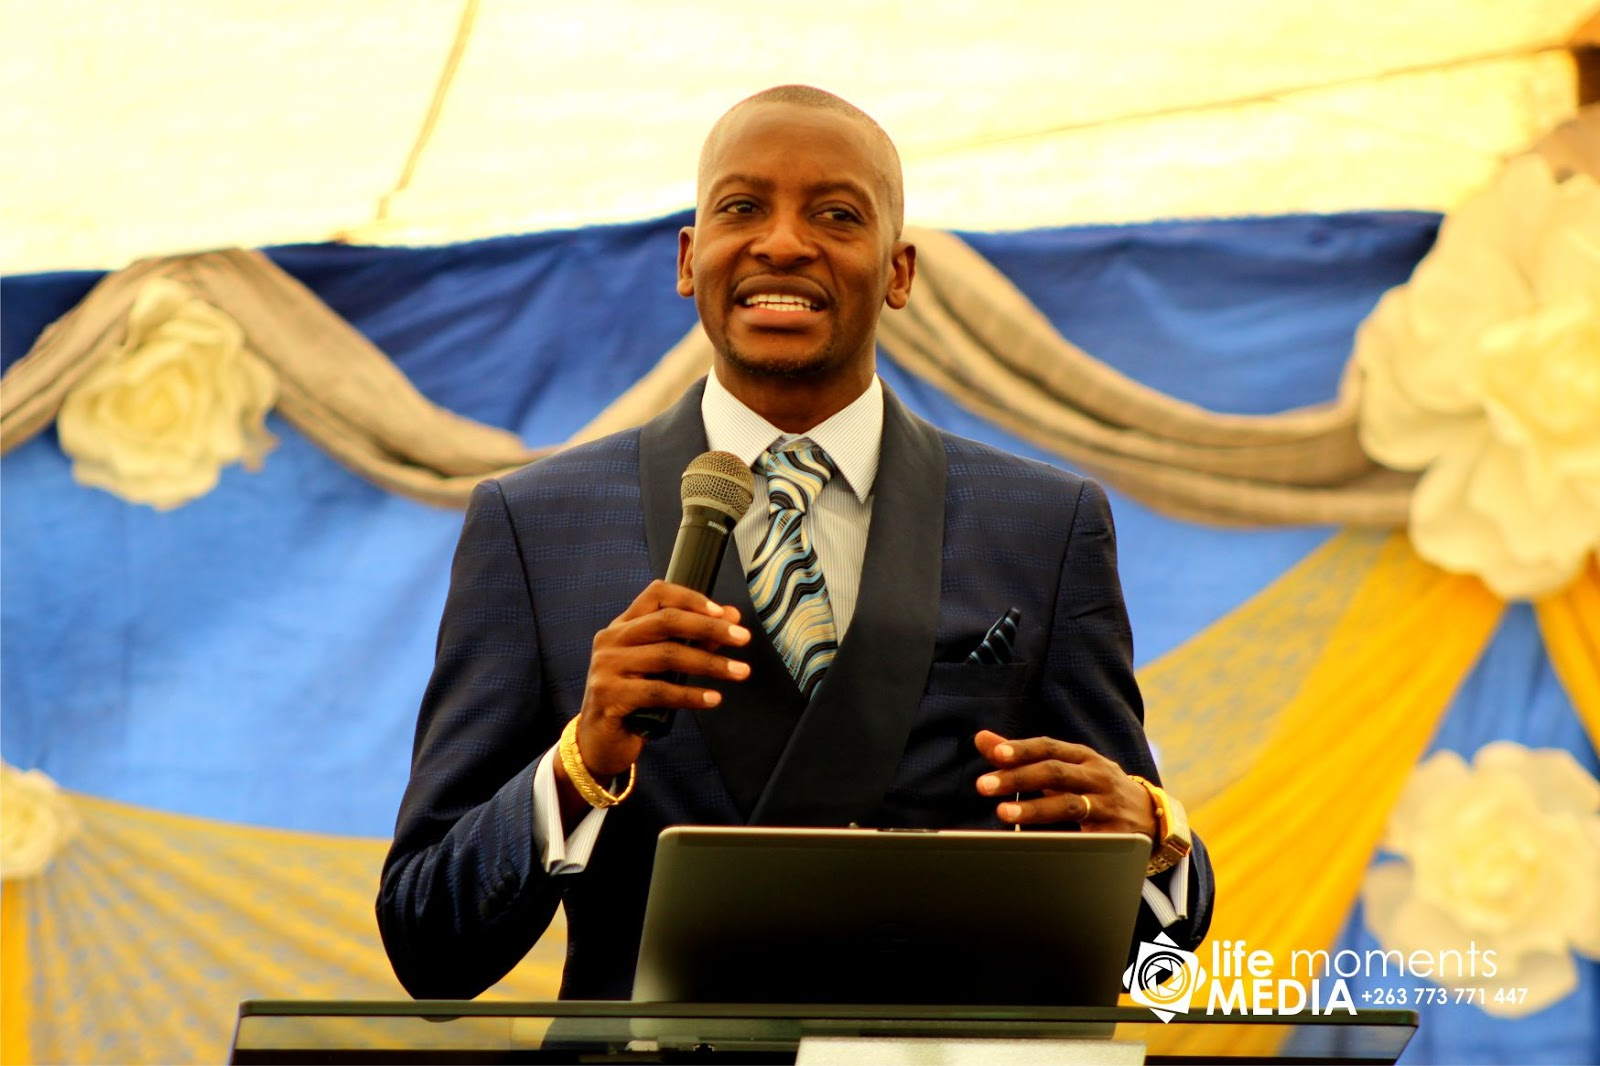 Honour - What Does That Mean with Apostle B. Java (Founder's Day Notes)  Captured By: Life Moments Media